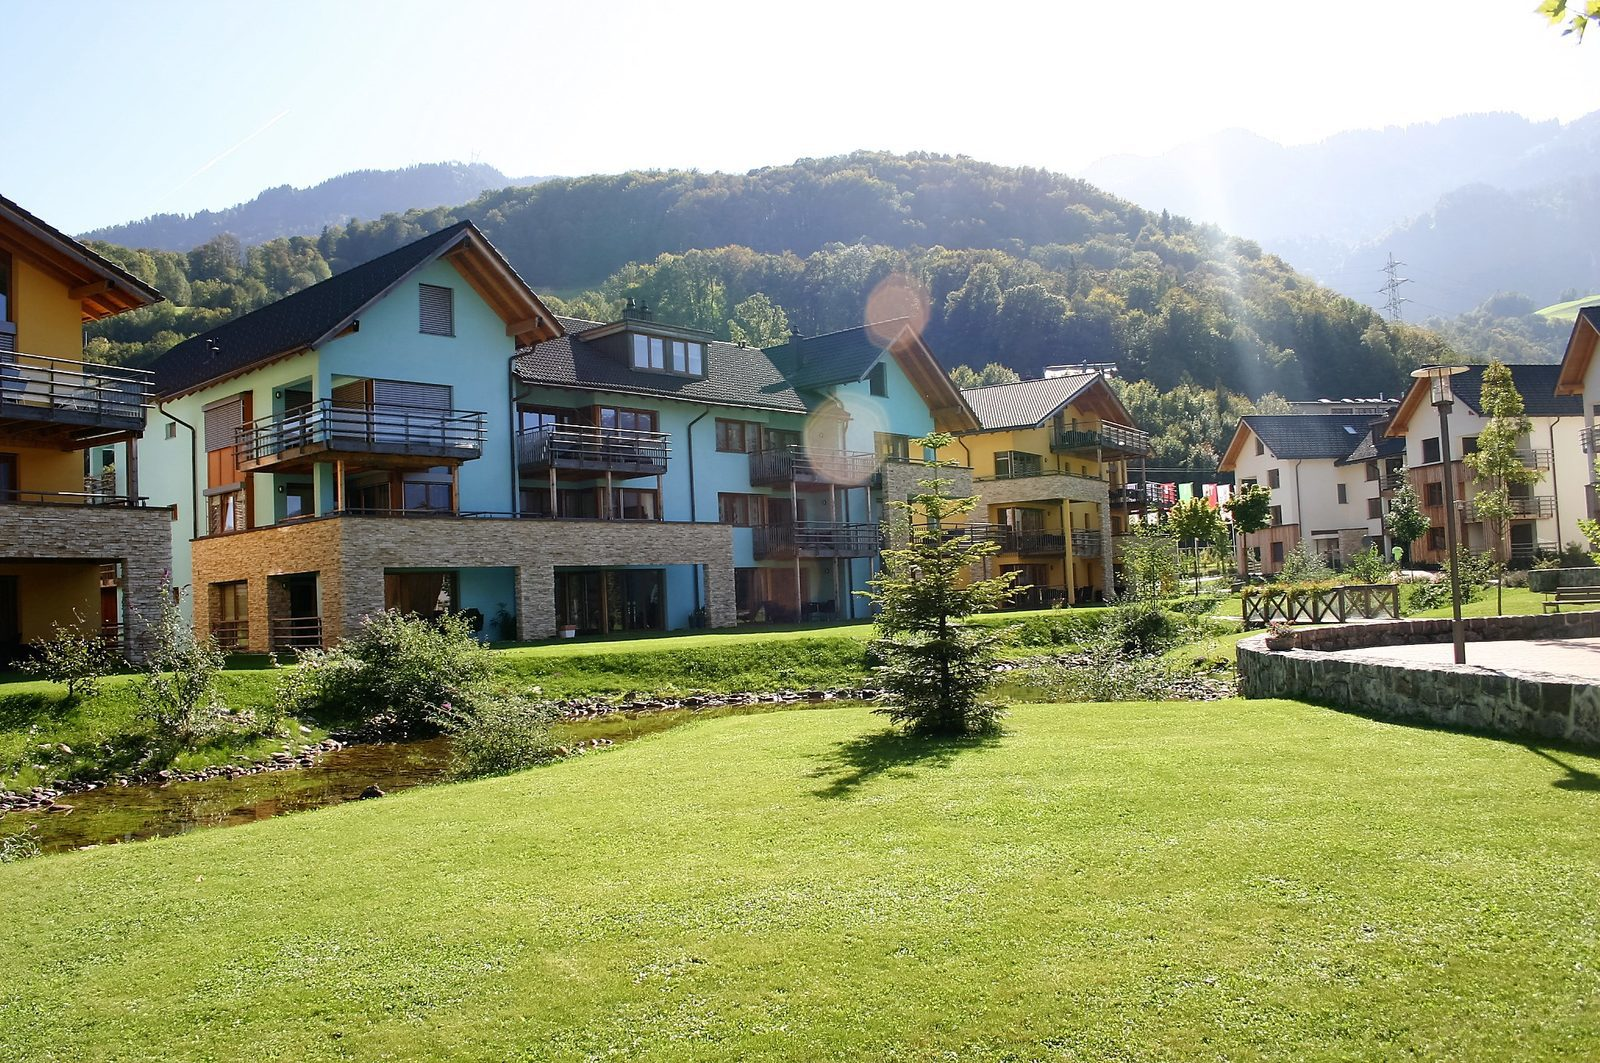 Holiday homes along the little stream of Resort Walensee in Heidiland Flumserberg Switzerland, during the Easter holidays